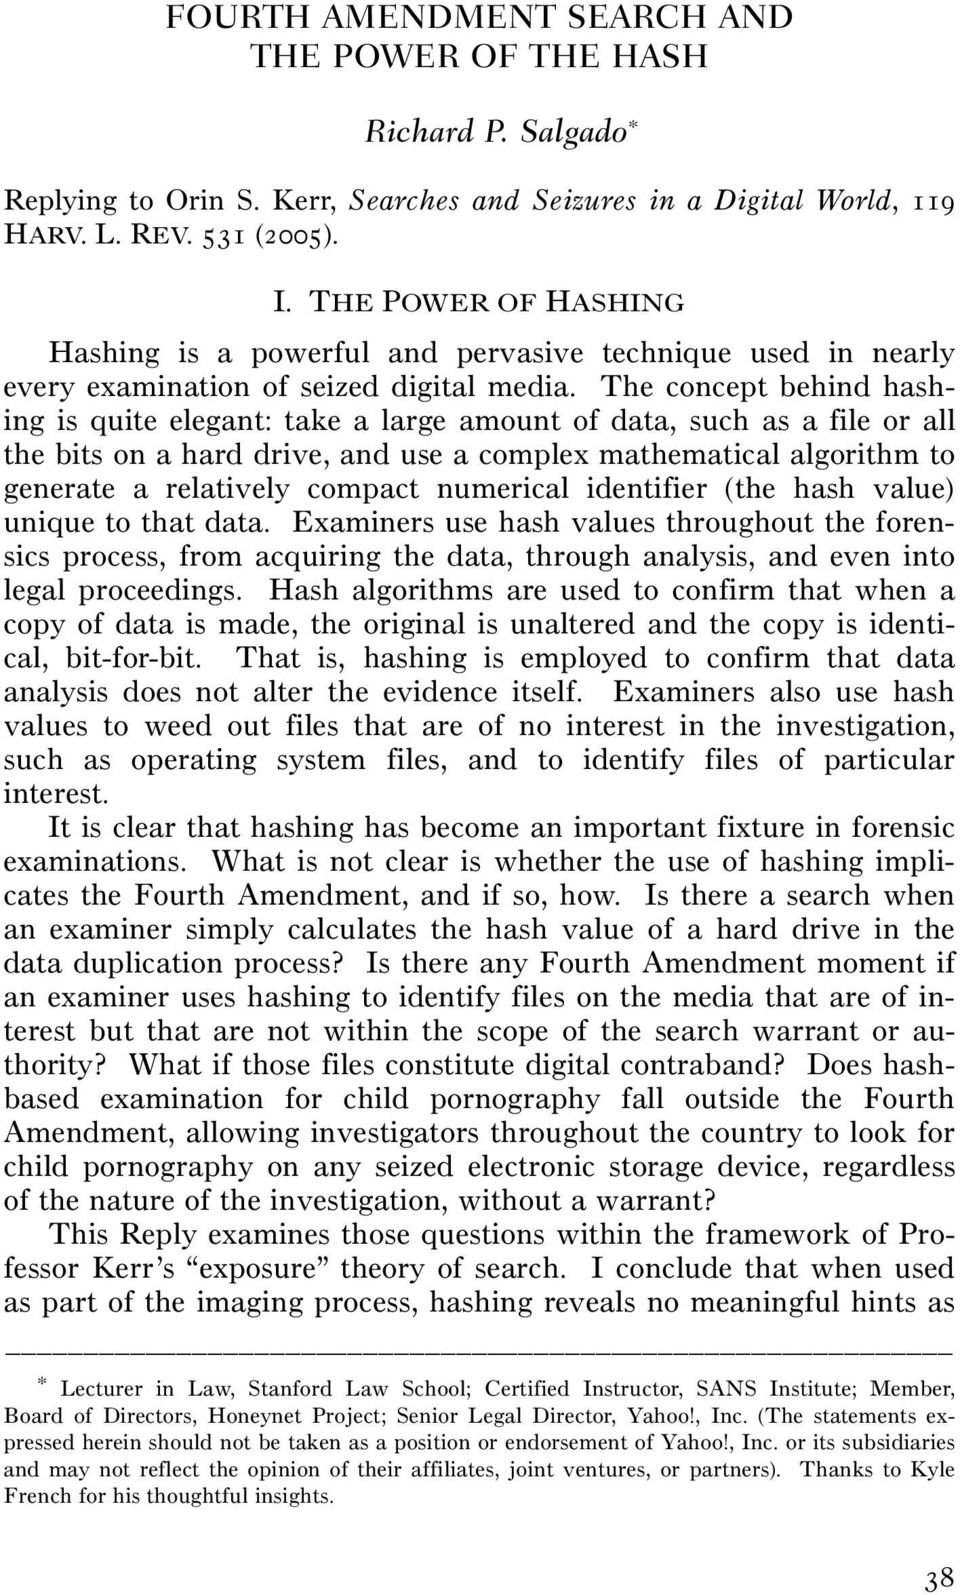 The concept behind hashing is quite elegant: take a large amount of data, such as a file or all the bits on a hard drive, and use a complex mathematical algorithm to generate a relatively compact